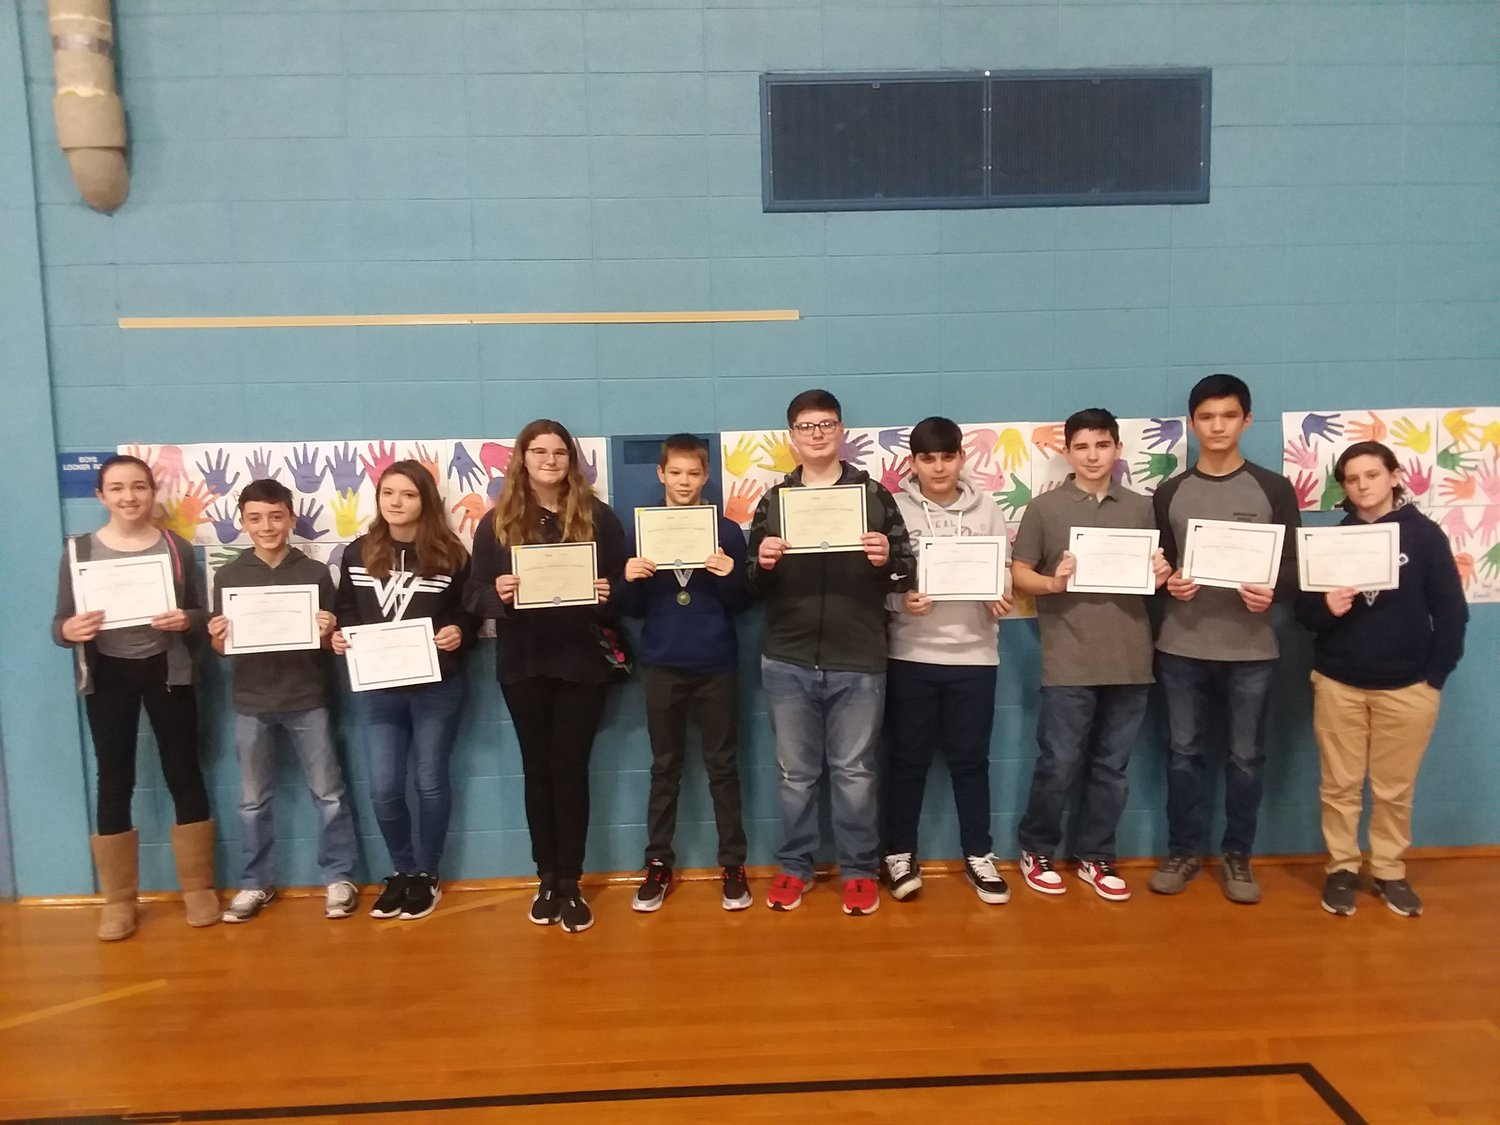 Participants in Beckwith National Geographic Bee